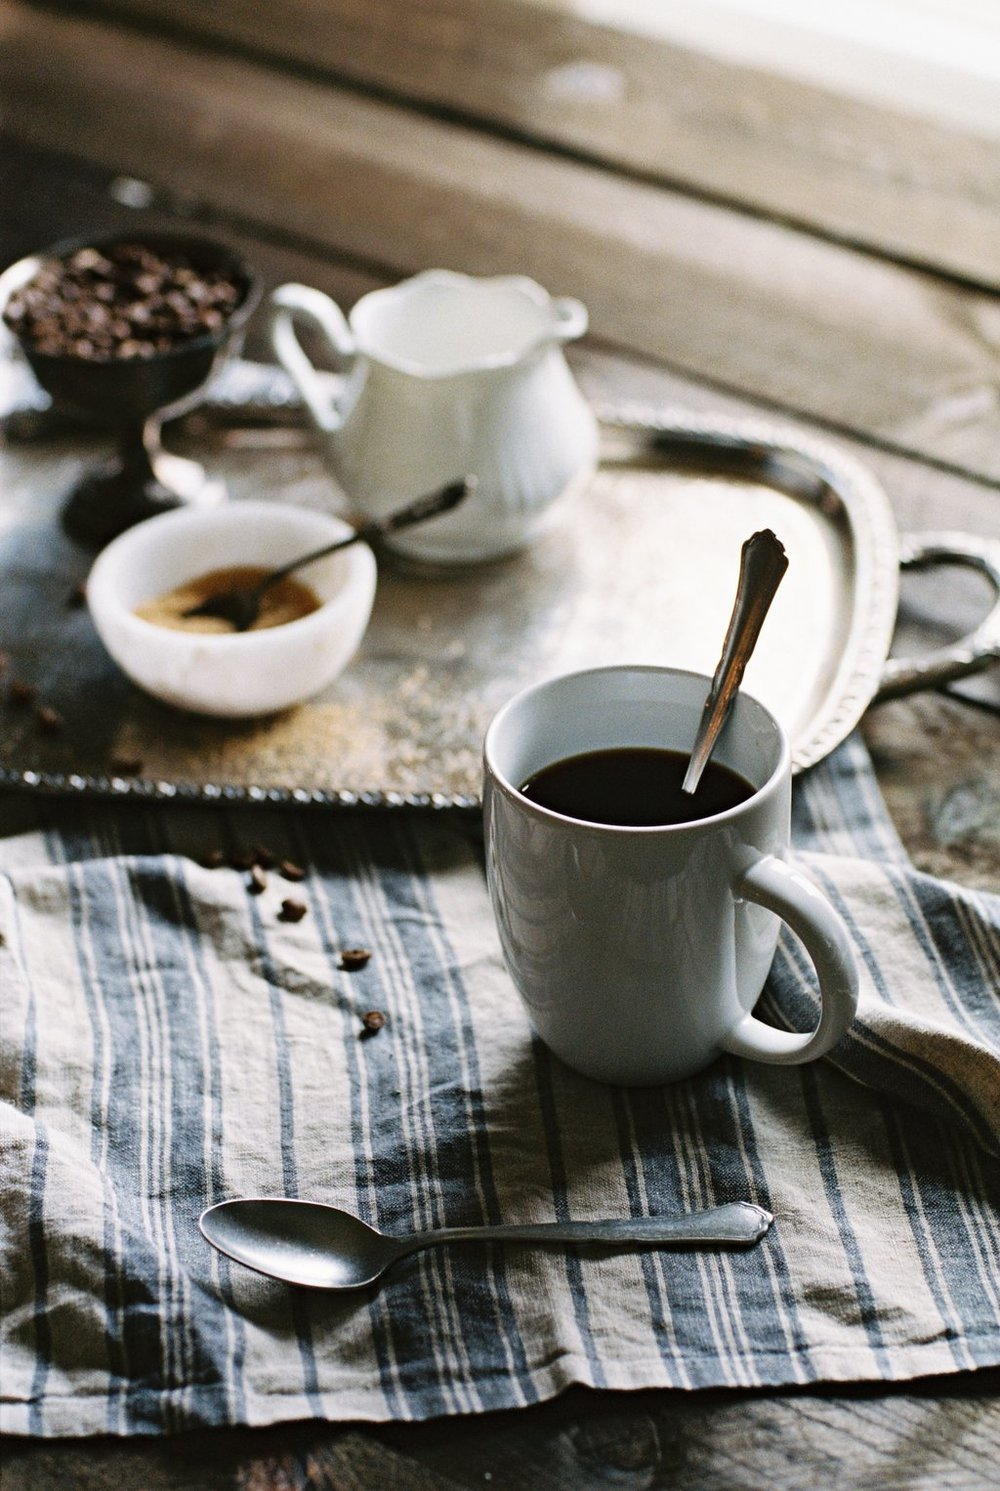 How to Enjoy a Slow Morning | cottagehillmag.com